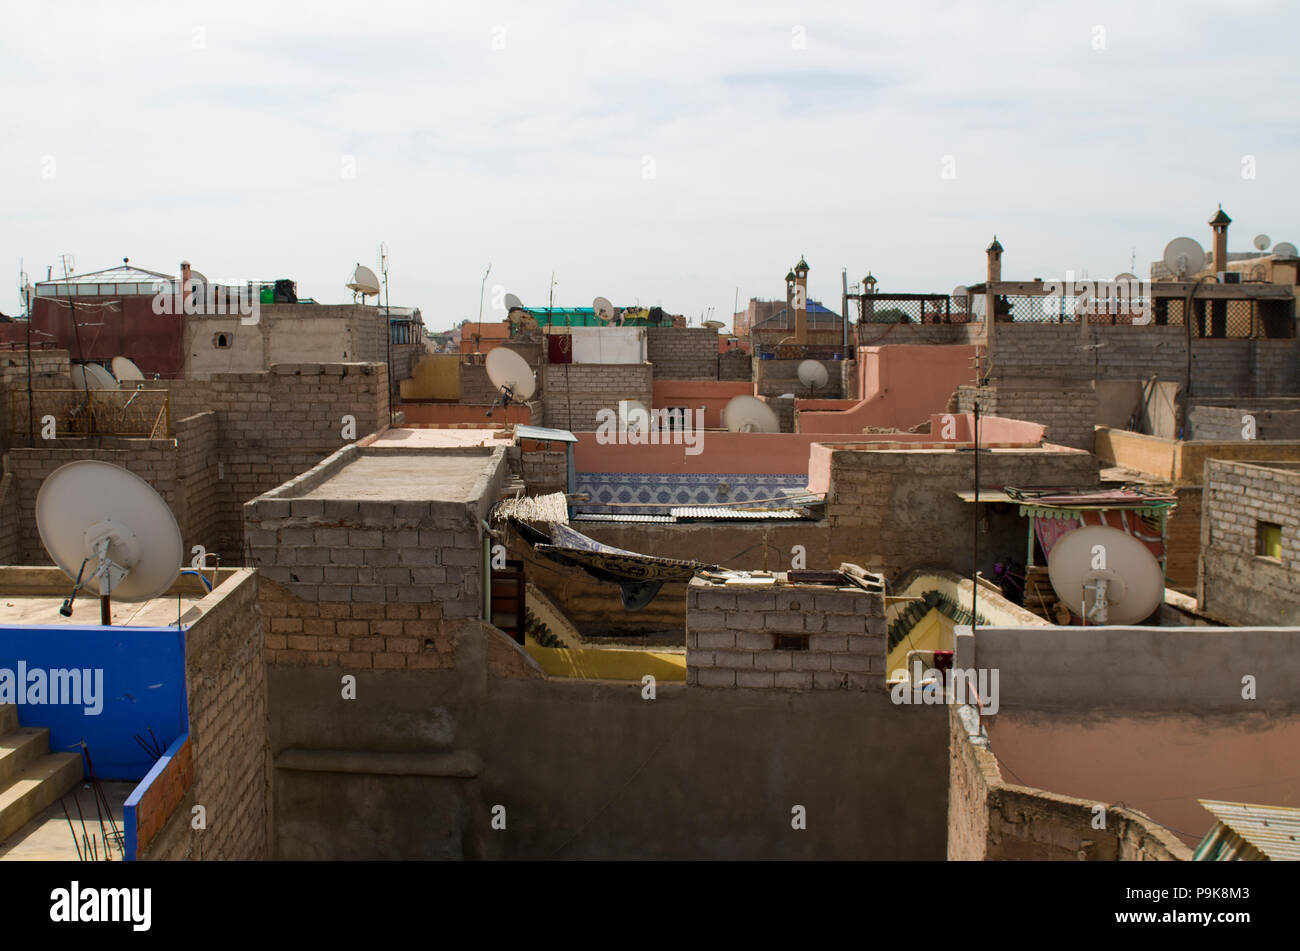 The rooftops of slums in morocco - Stock Image